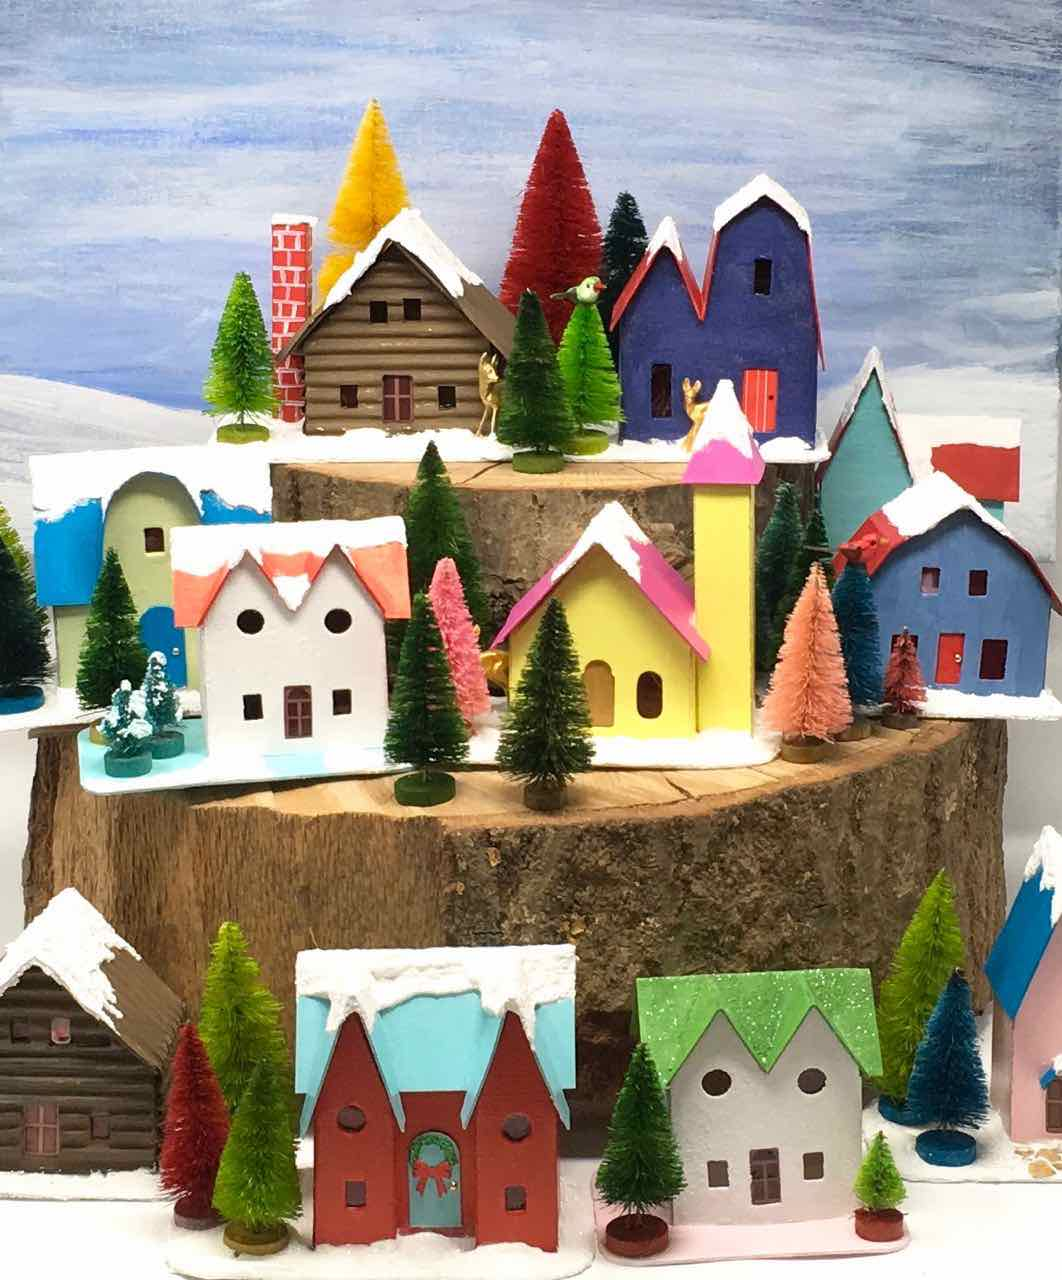 12 different free templates to make your own Christmas village